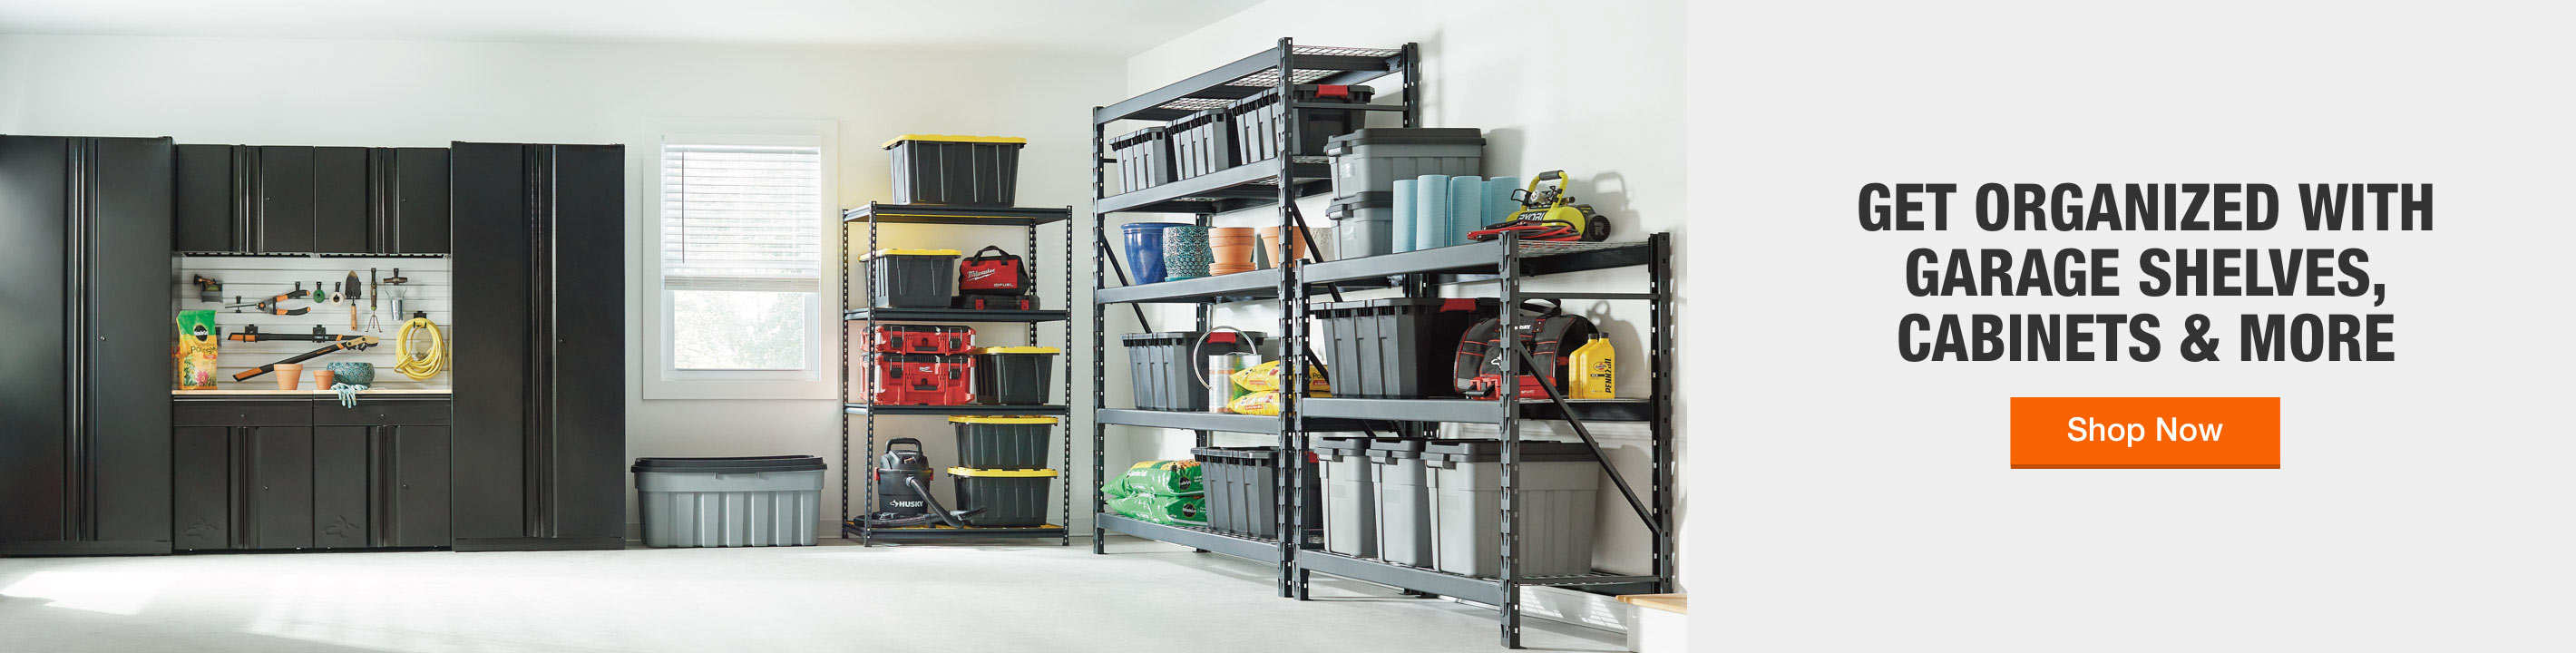 Get Organized with Garage Shelves, Cabinets & More